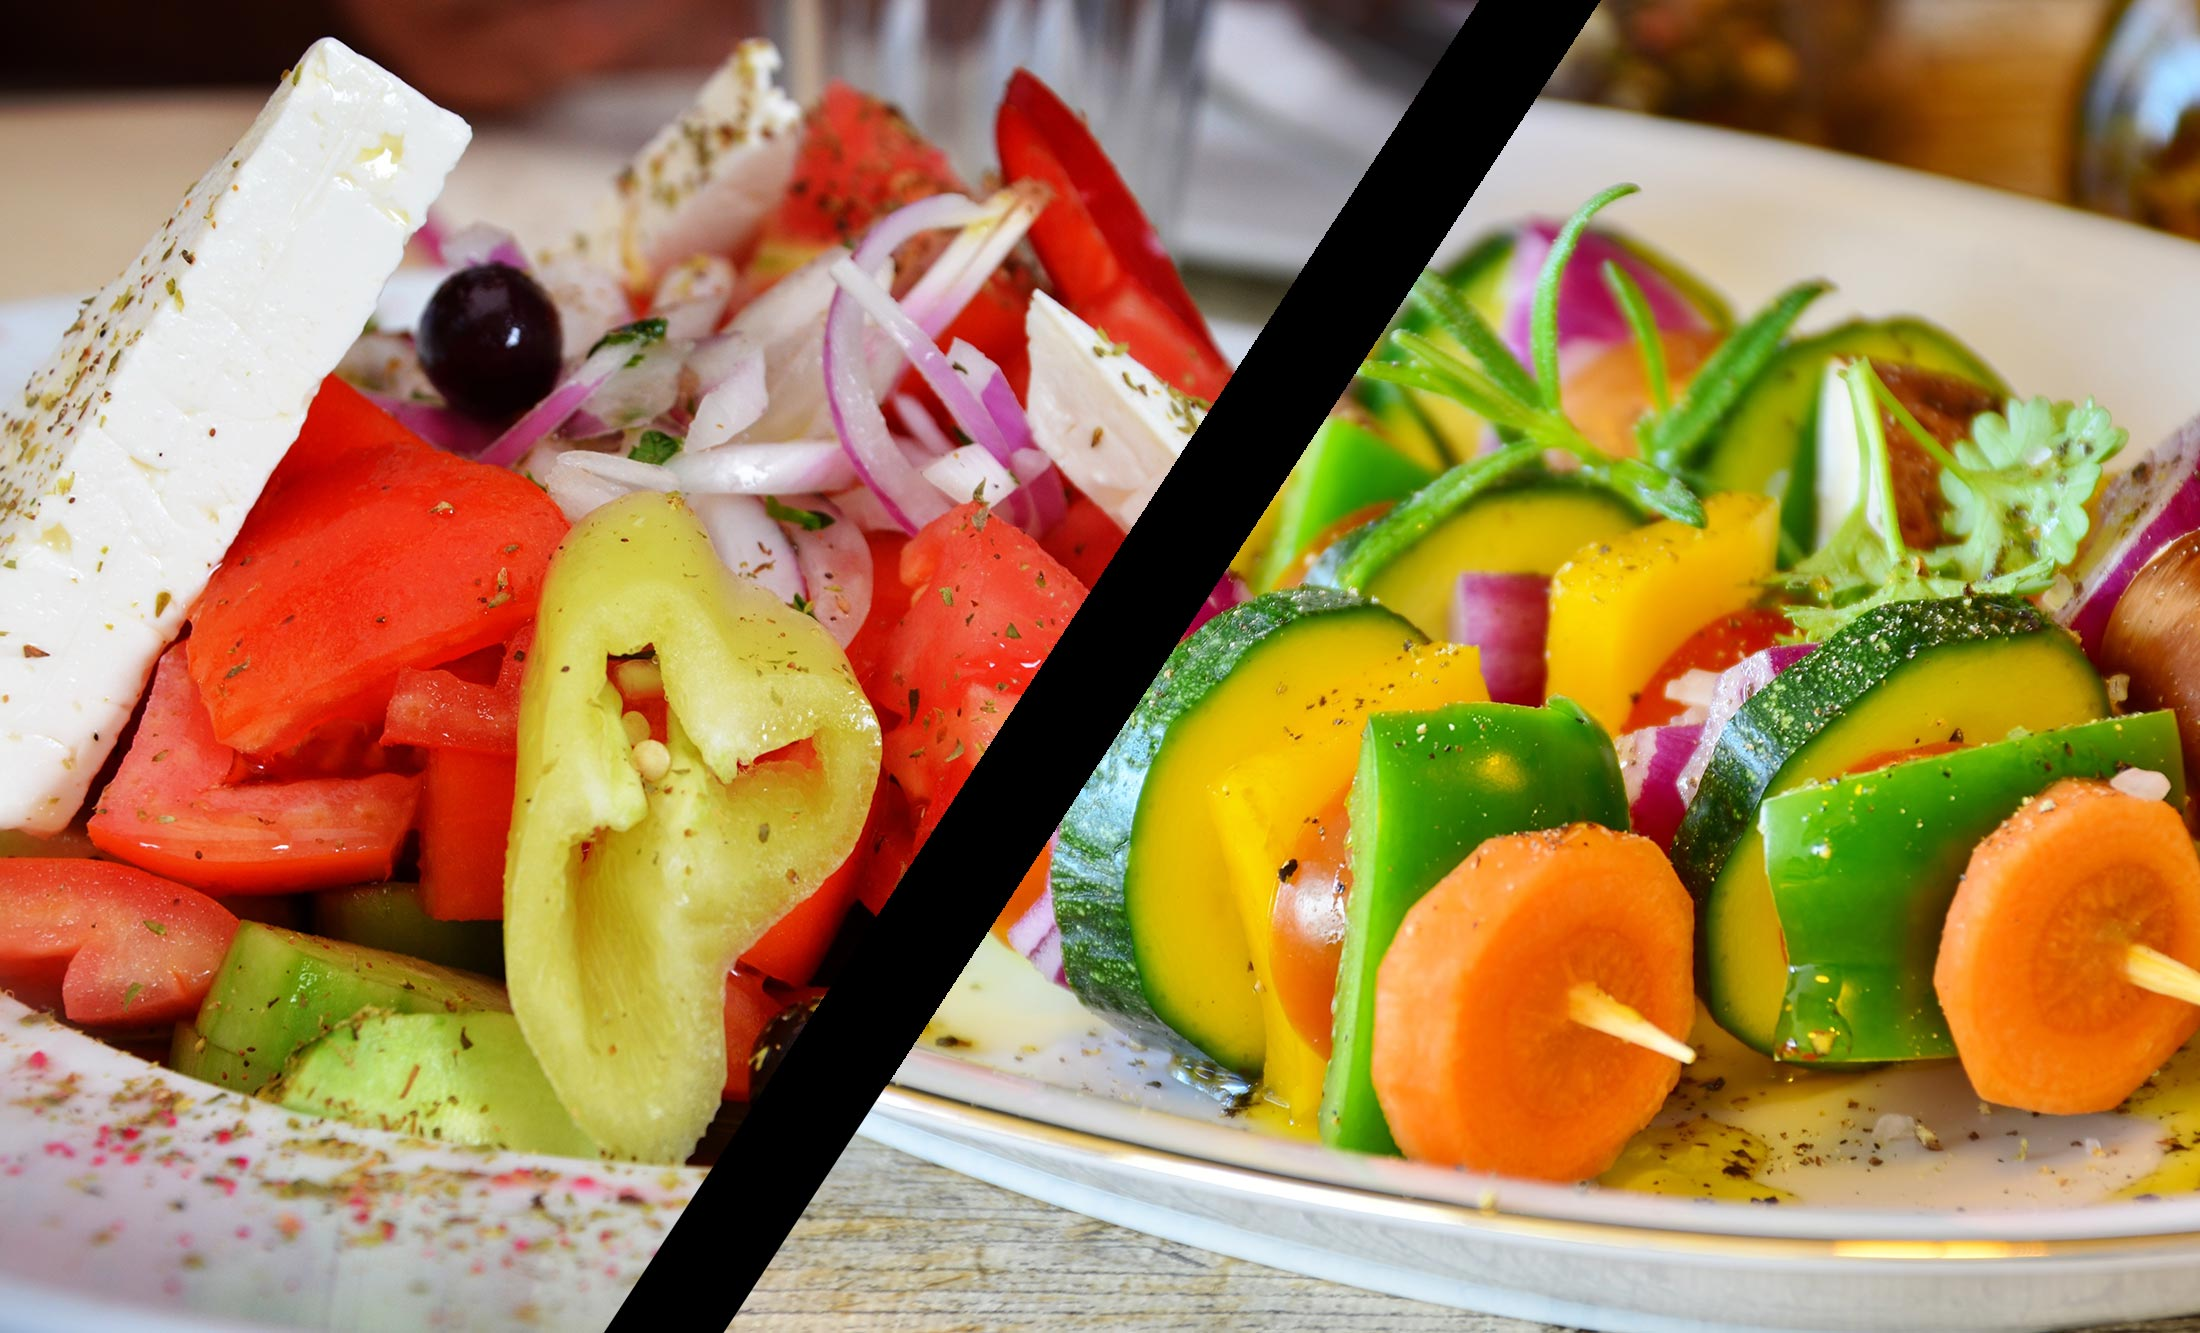 Groundbreaking New Study Compares Vegan and Mediterranean Diets for Weight Loss and Cholesterol Control